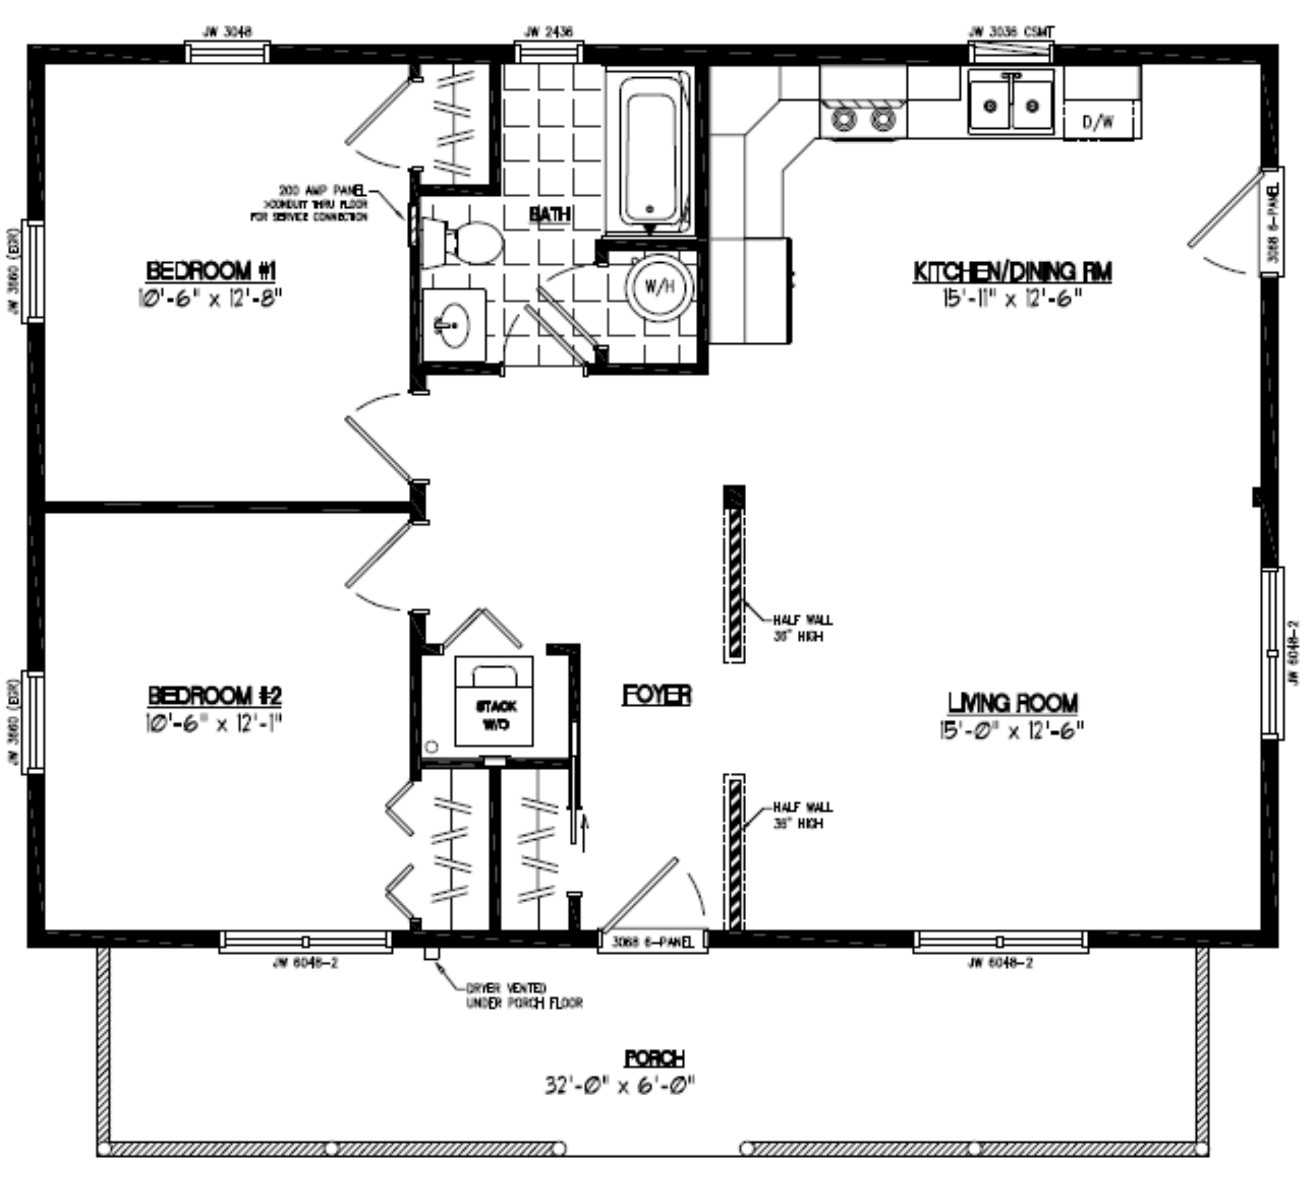 95a1b61cdff602a0 further Arabian style house plans as well Grand Teton Lodge House Plan moreover Oak Carriage House additionally Garage Apartment Floor Plans. on rustic carriage house plans